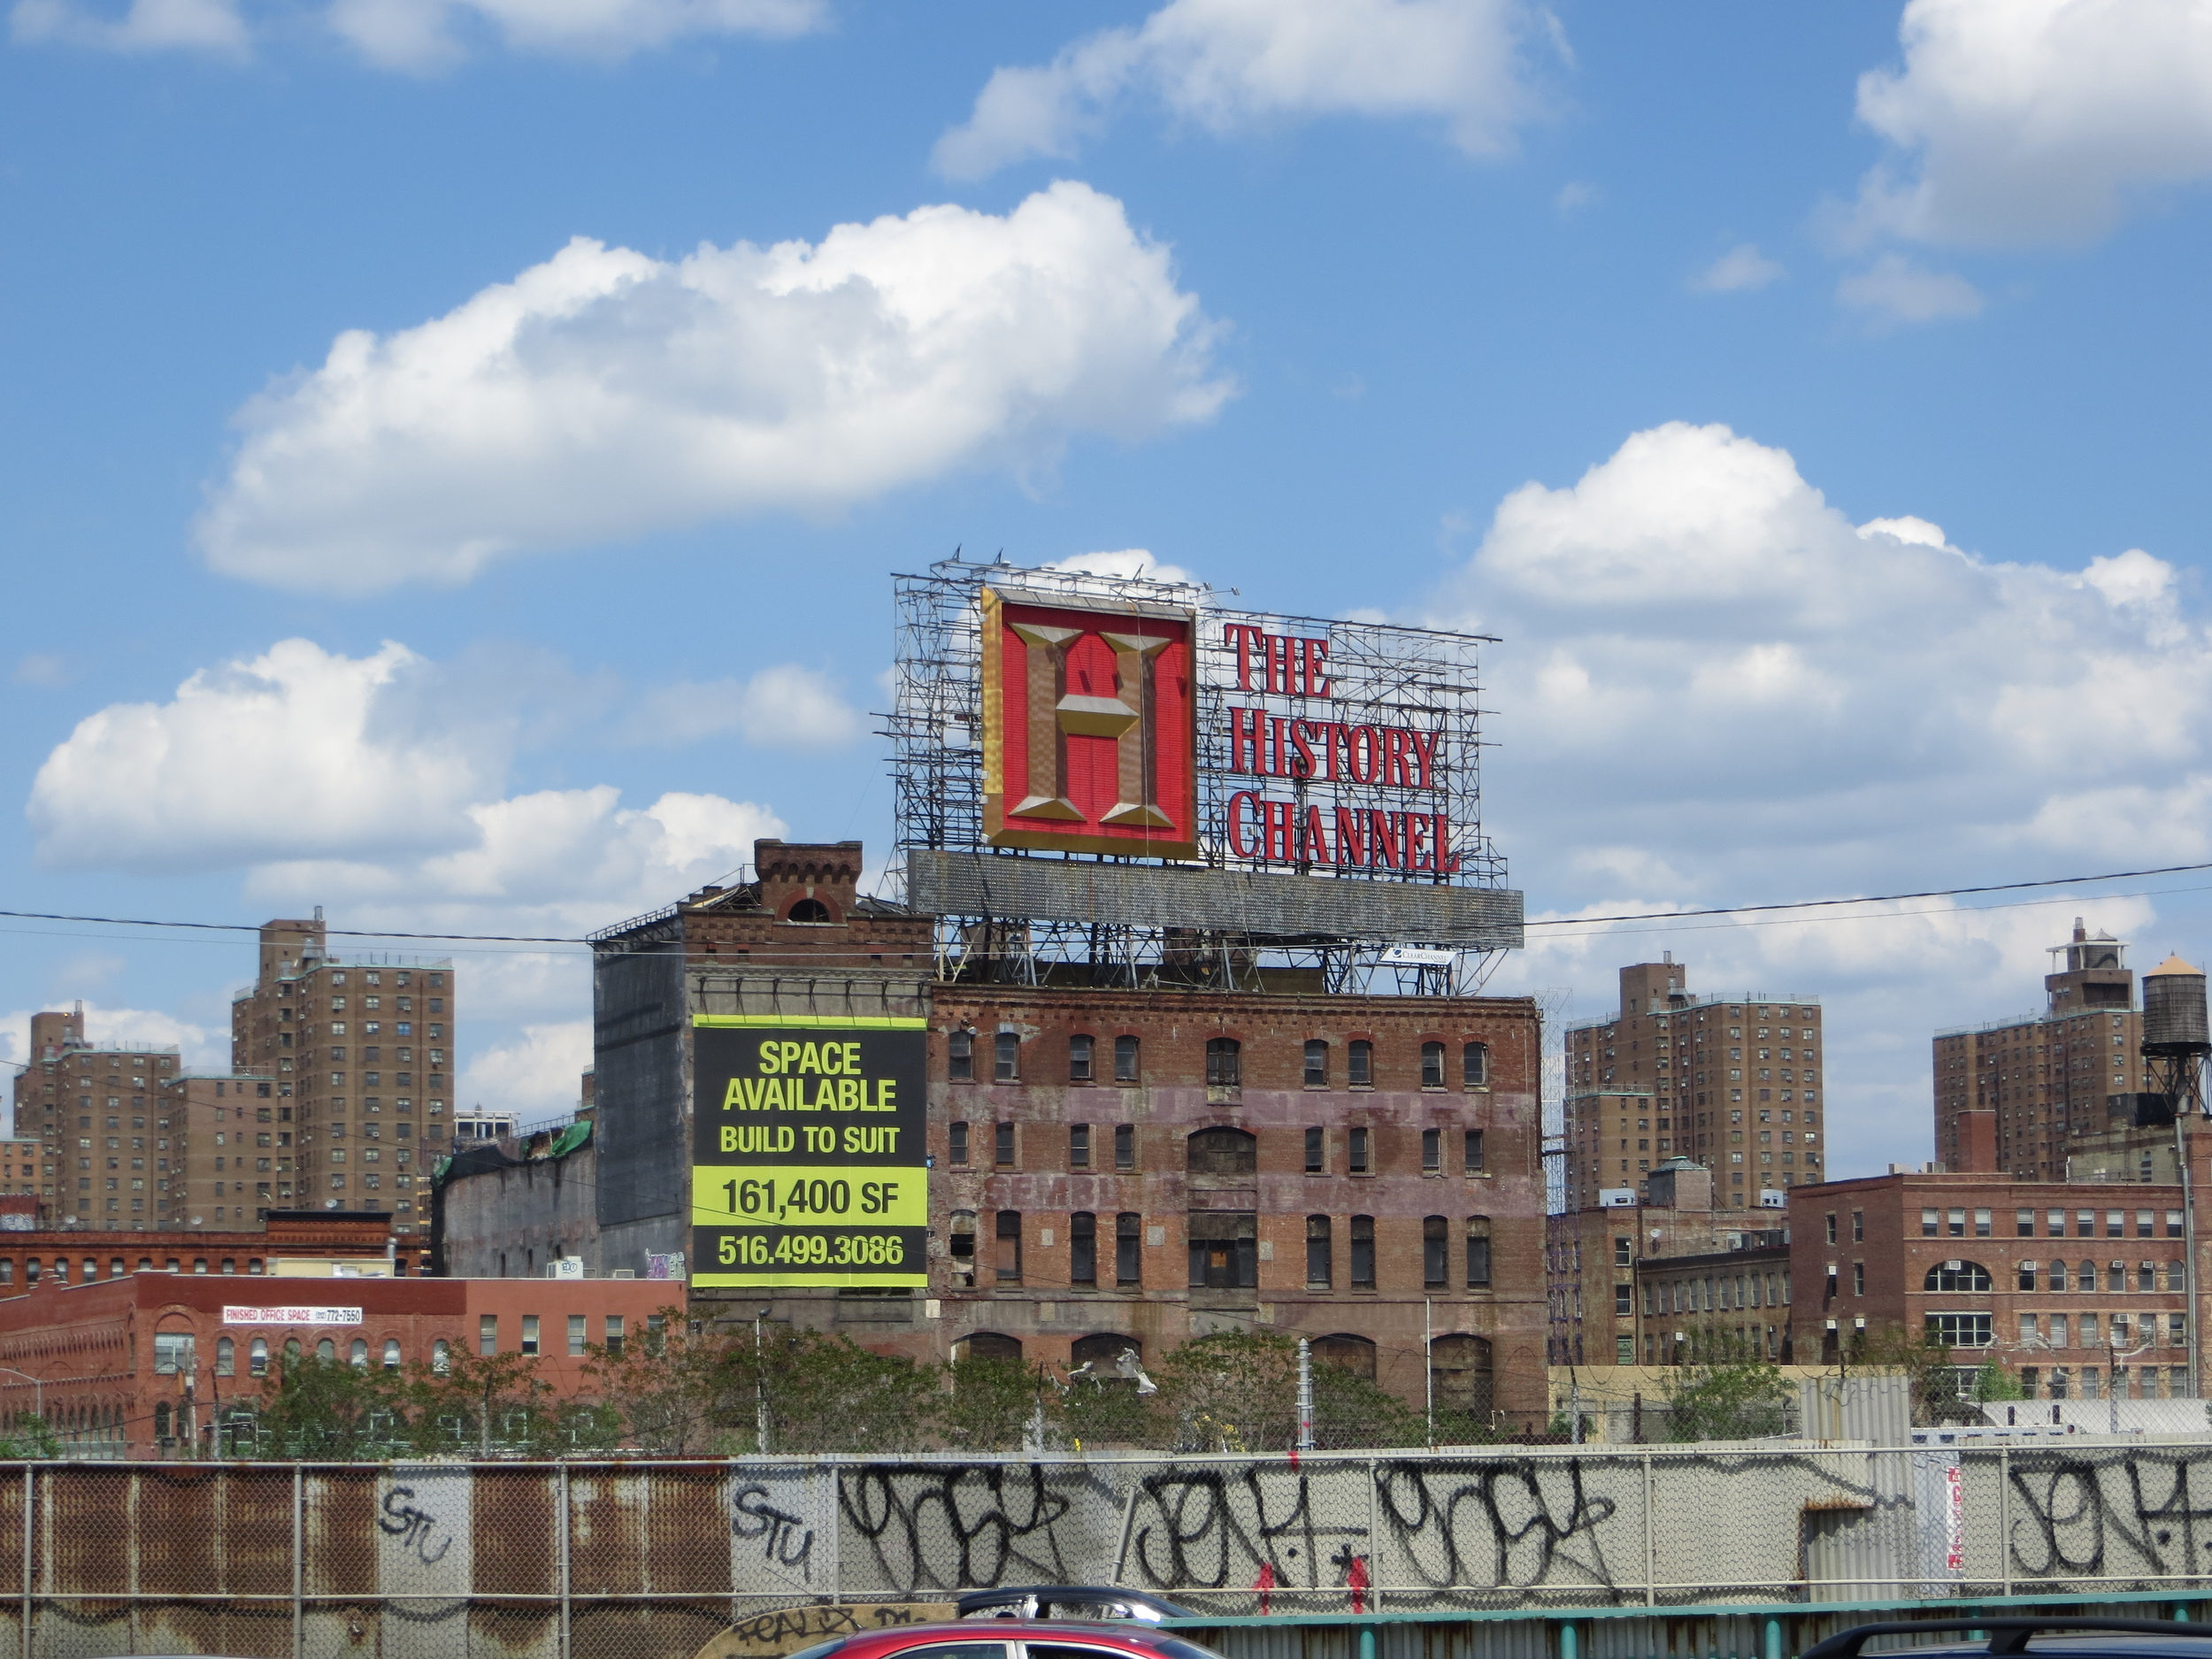 View into the South Bronx (it's History Channel turf)